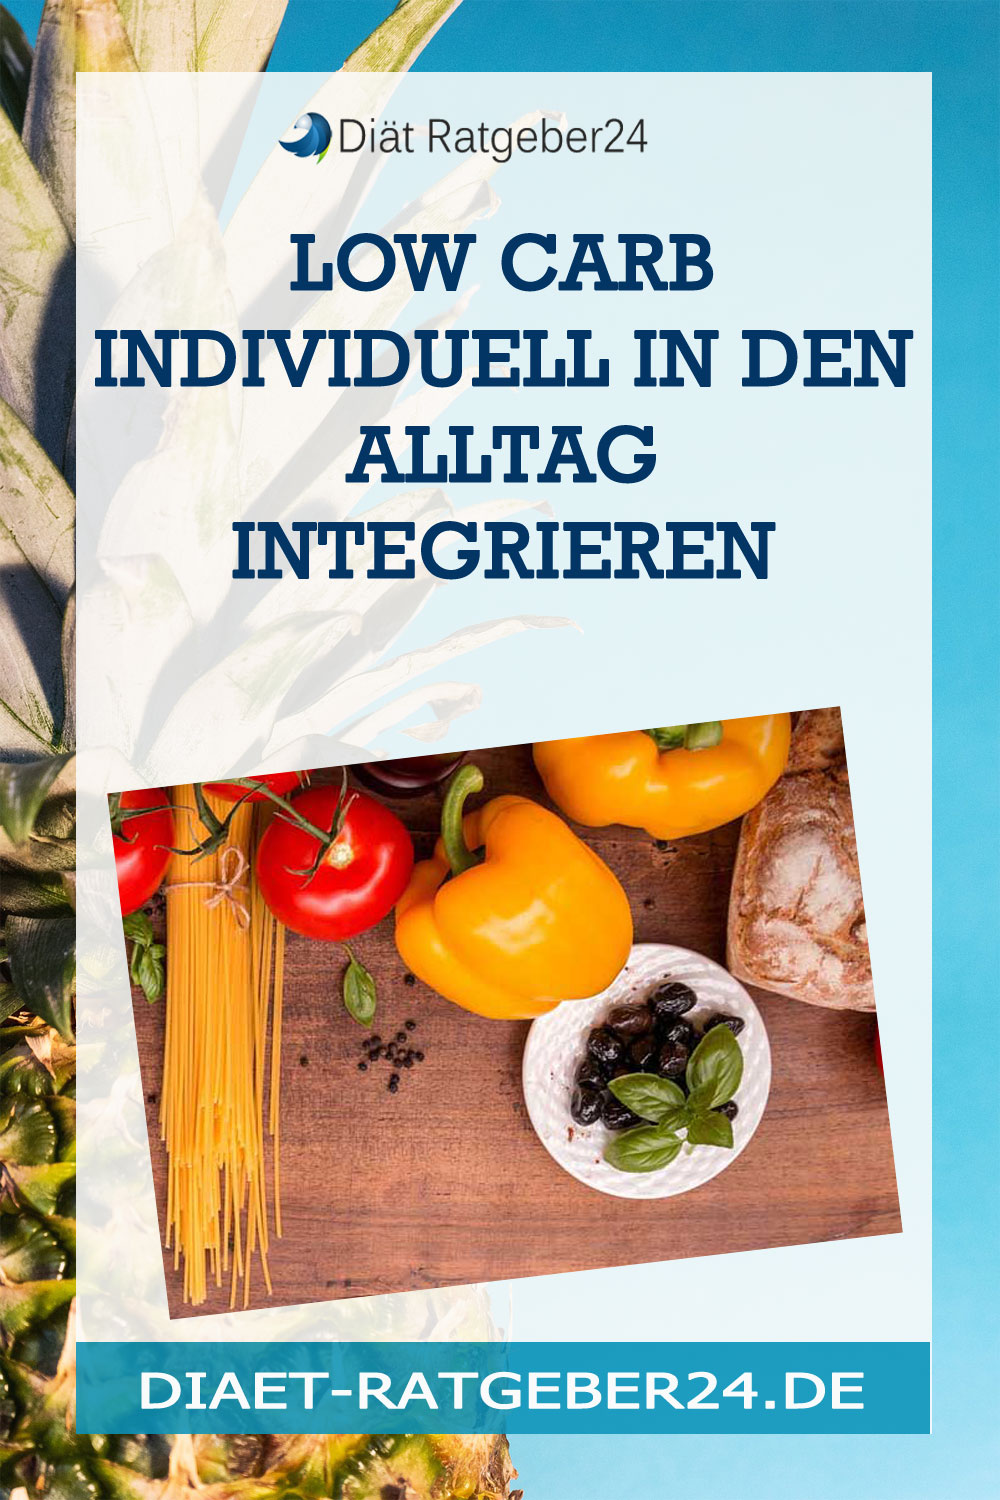 Low Carb individuell in den Alltag integrieren